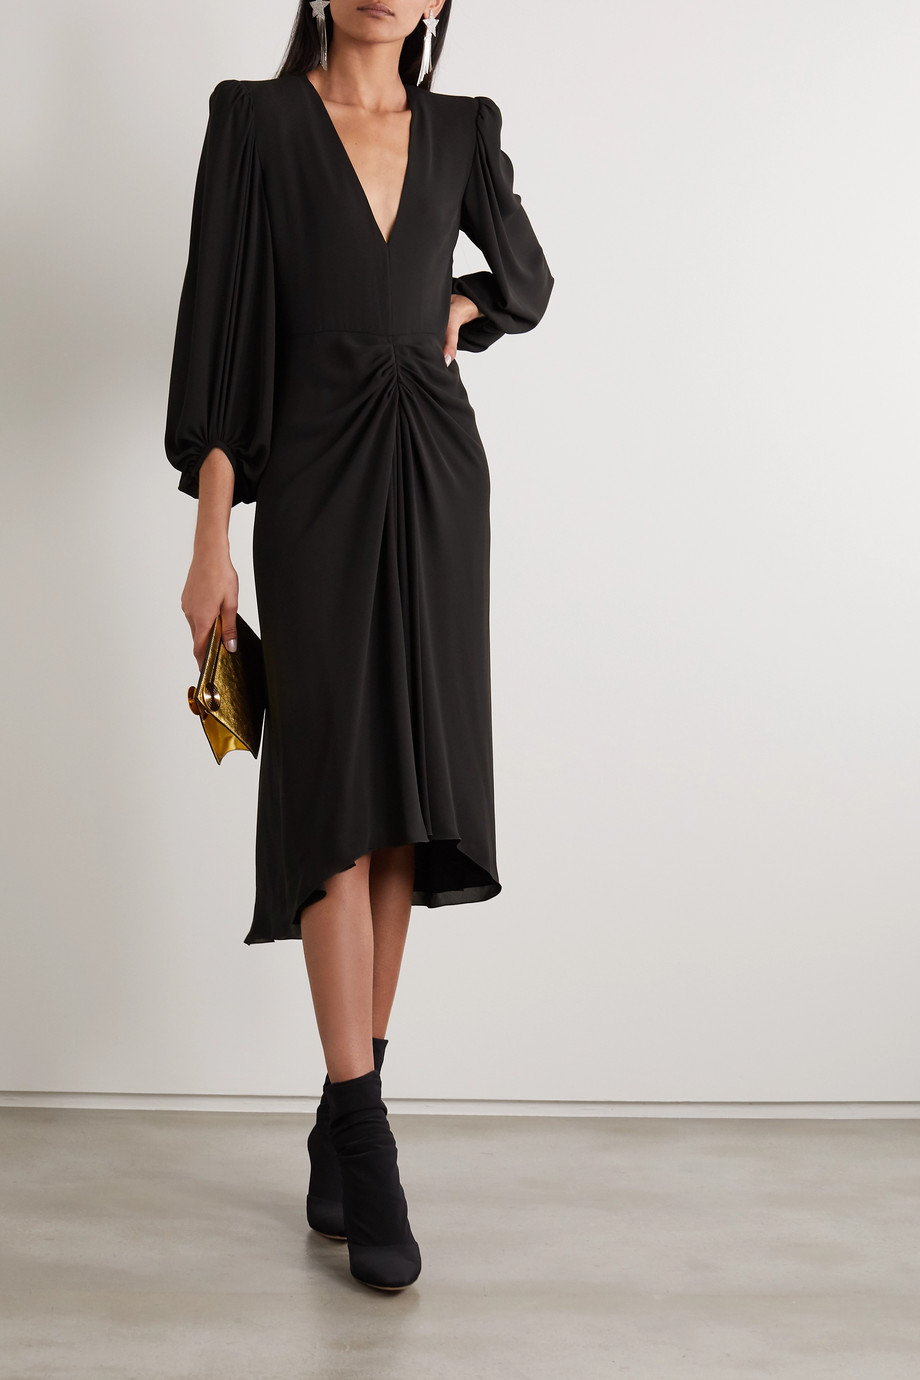 Philosophy di Lorenzo Serafini Asymmetric gathered crepe dress